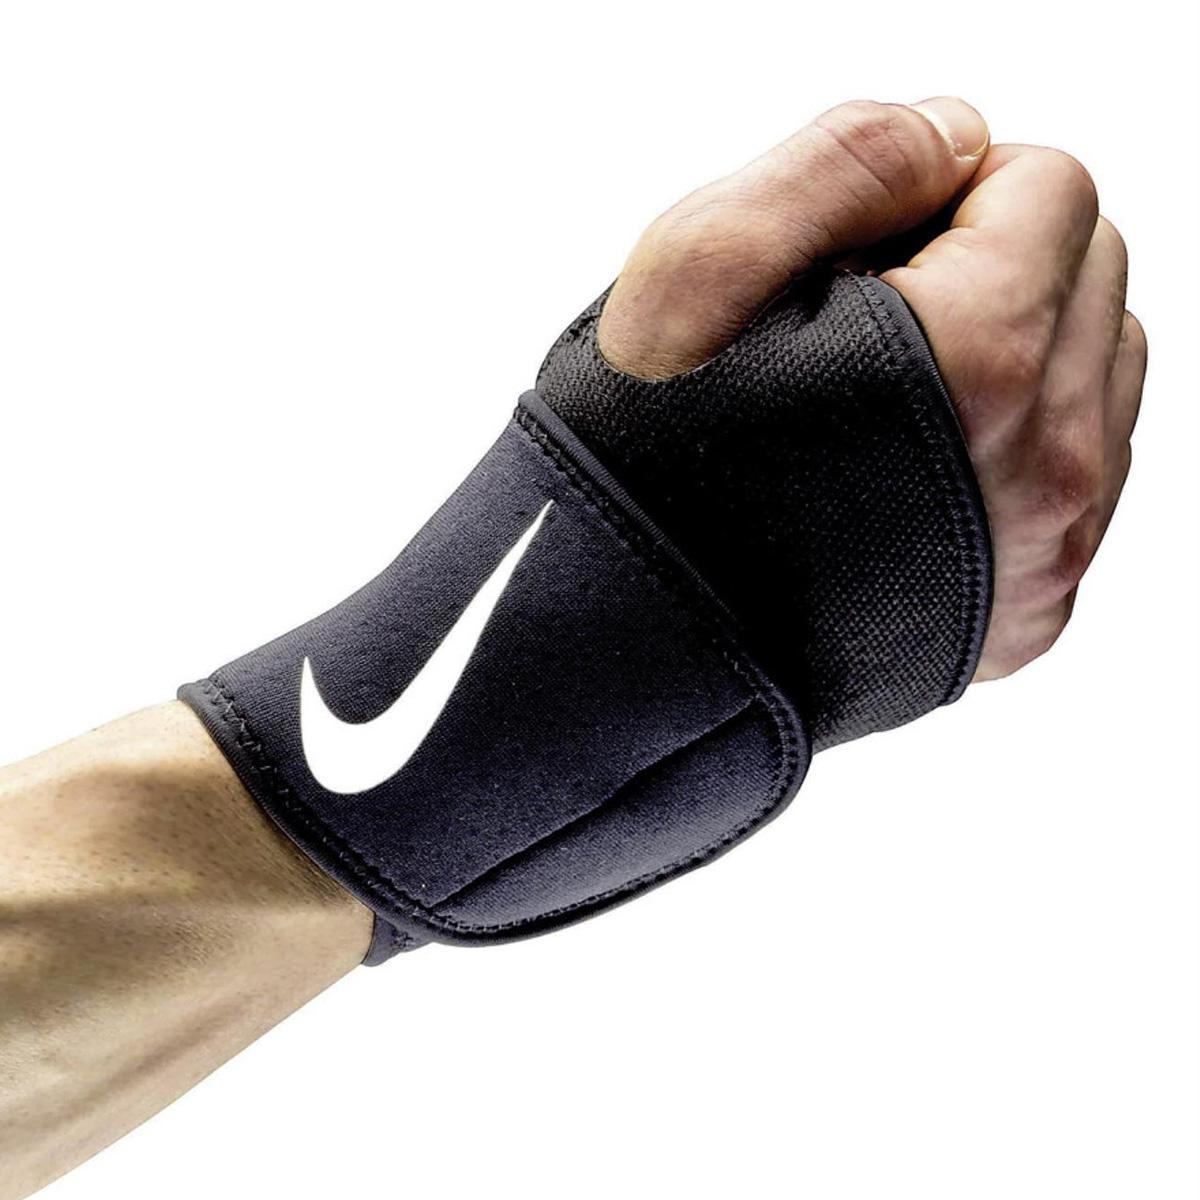 Nike Pro Combat Wrist And Thumb Wrap 2 0 Tennisnuts Com